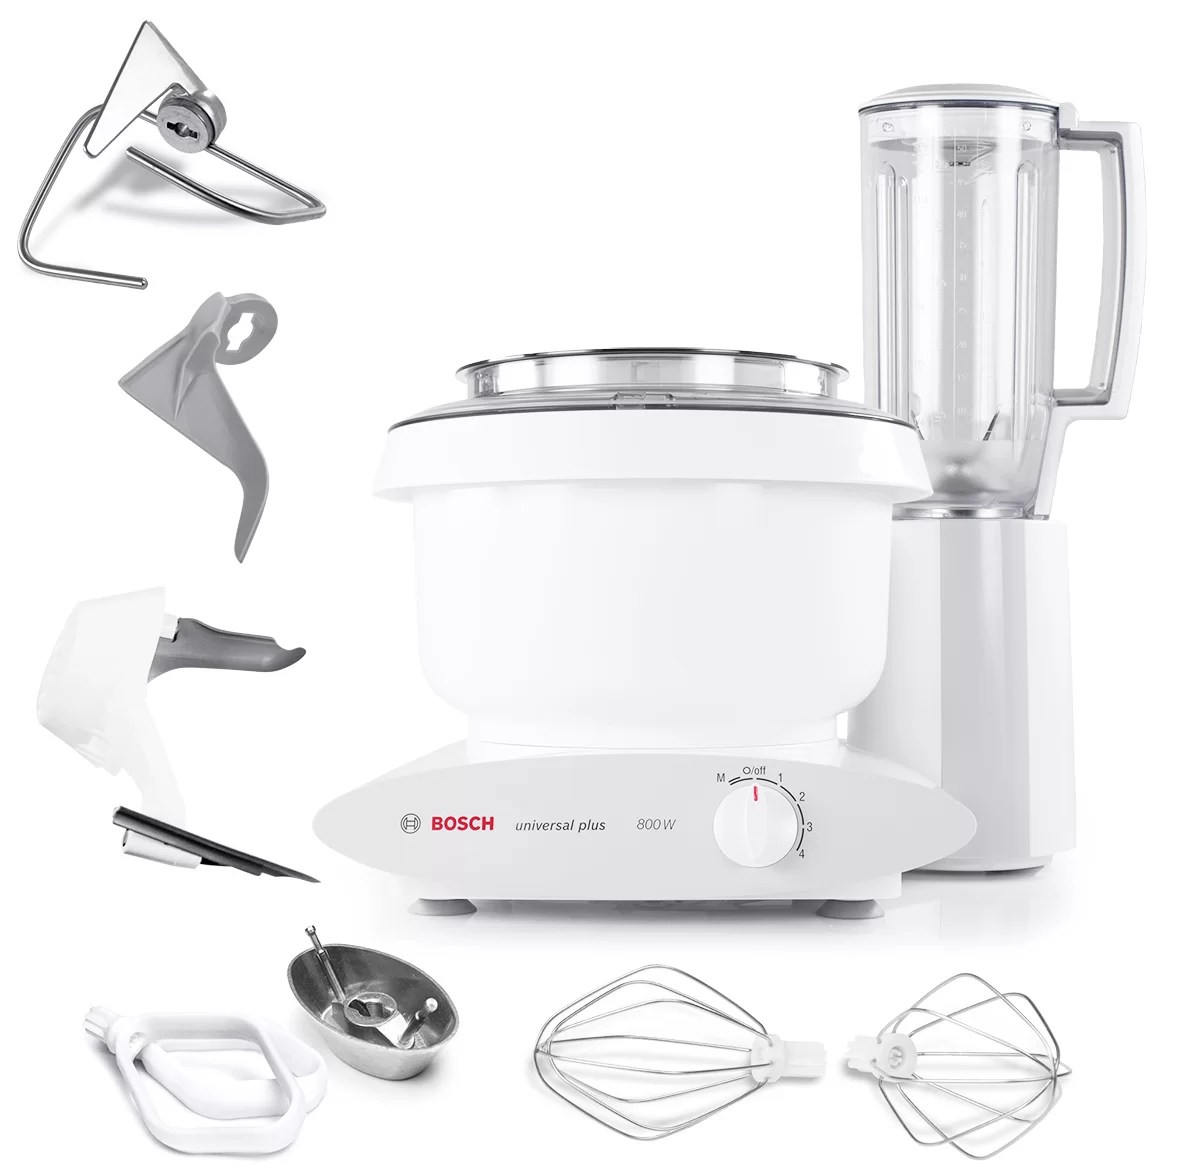 Bosch Blender Universal Plus 4 Speed 6 5 Qt 800 Watt Stand Mixer With Cookie Paddles Blender Bowl Scraper